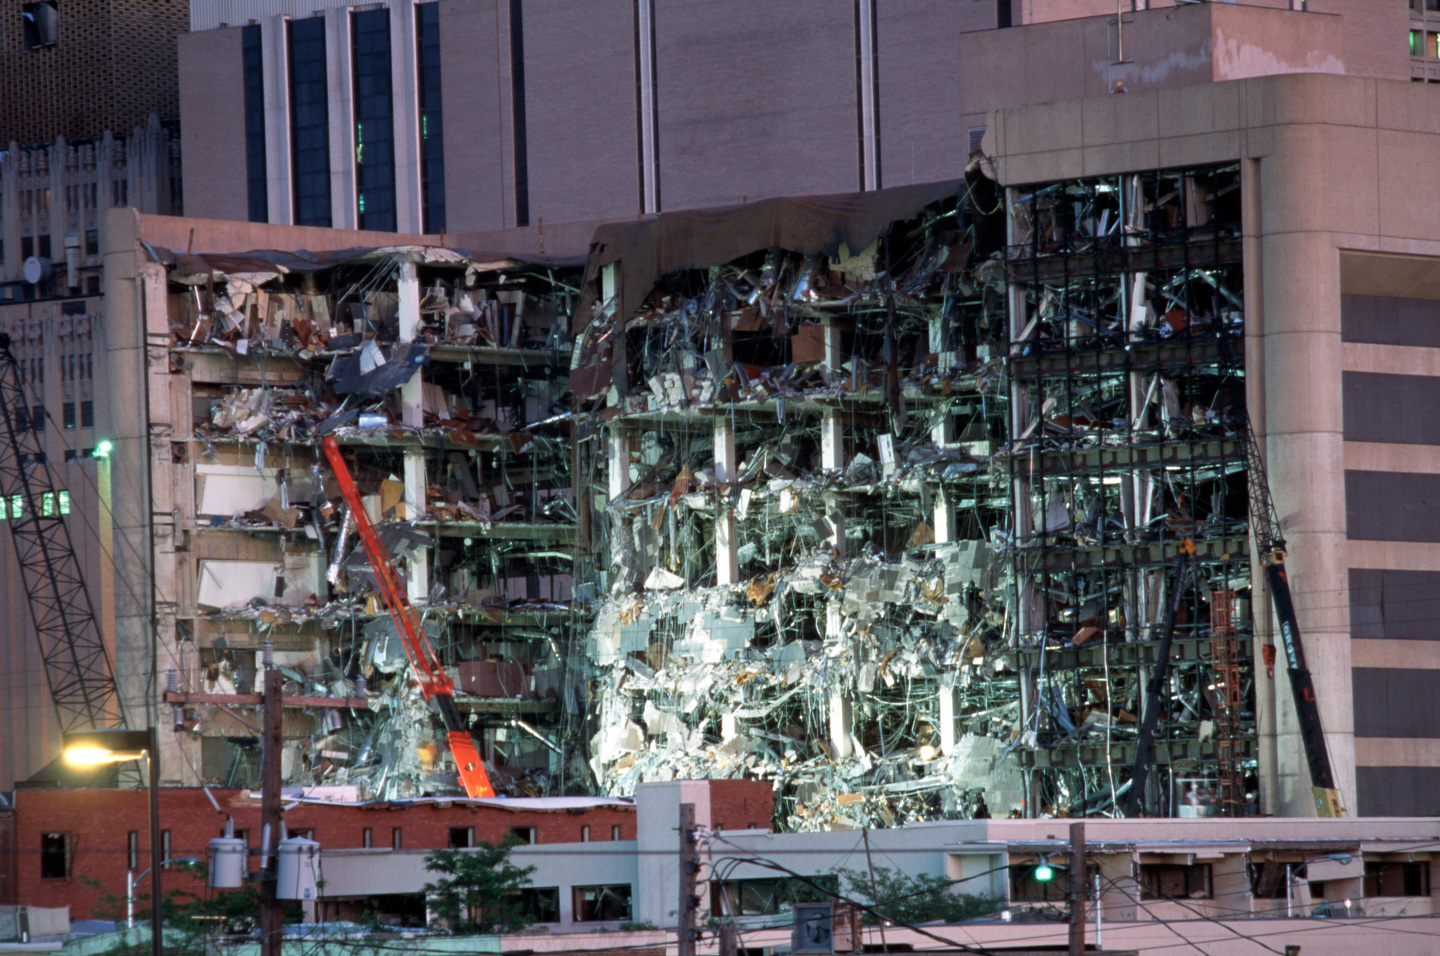 Terrorist Bomb Attack on Oklahoma Building (Photo by Robert Daemmrich Photography Inc/Sygma via Getty Images)